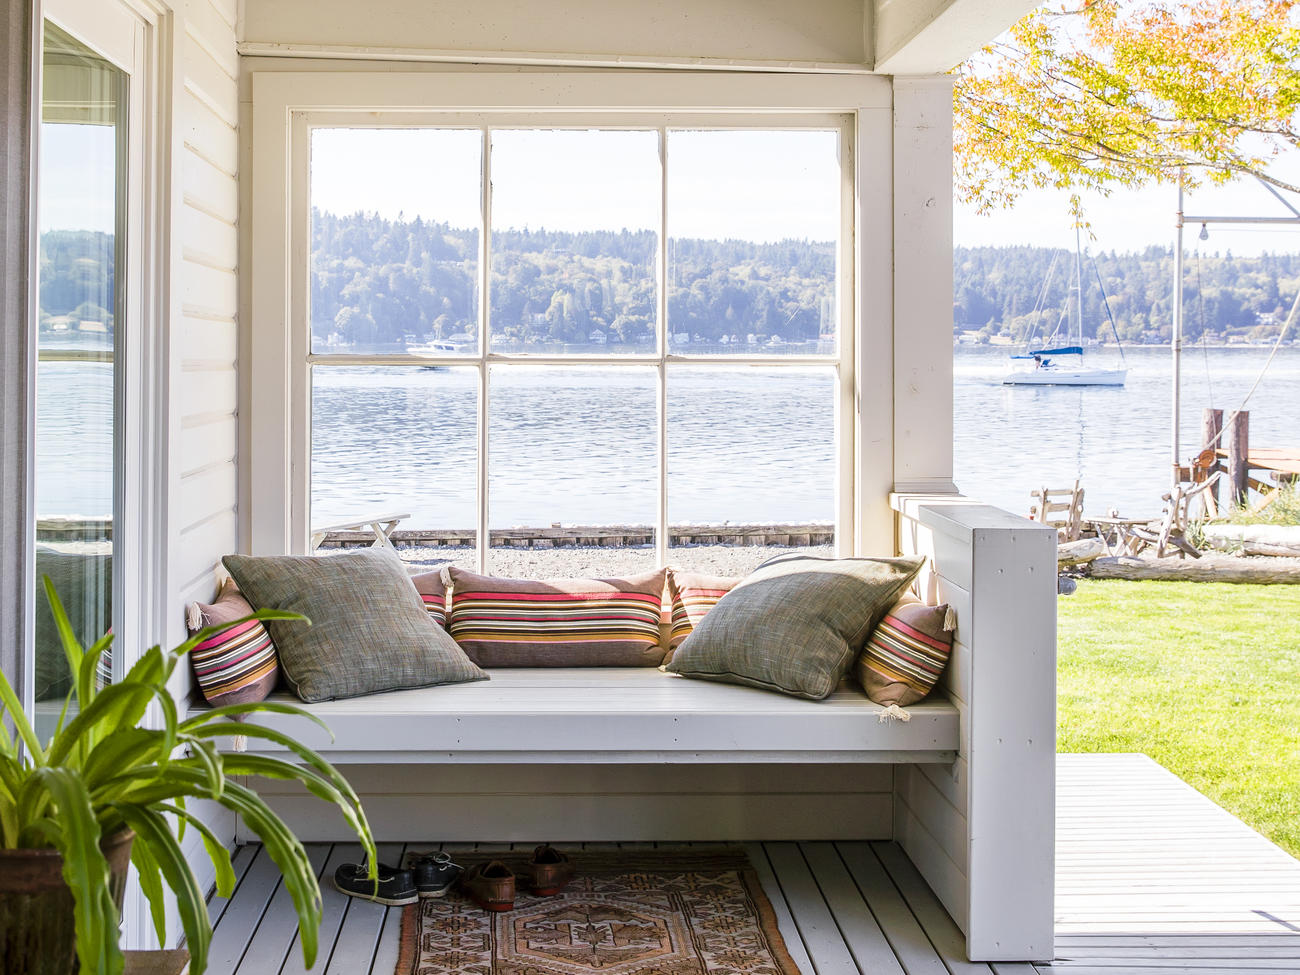 10 Cottage-Style Decorating Ideas